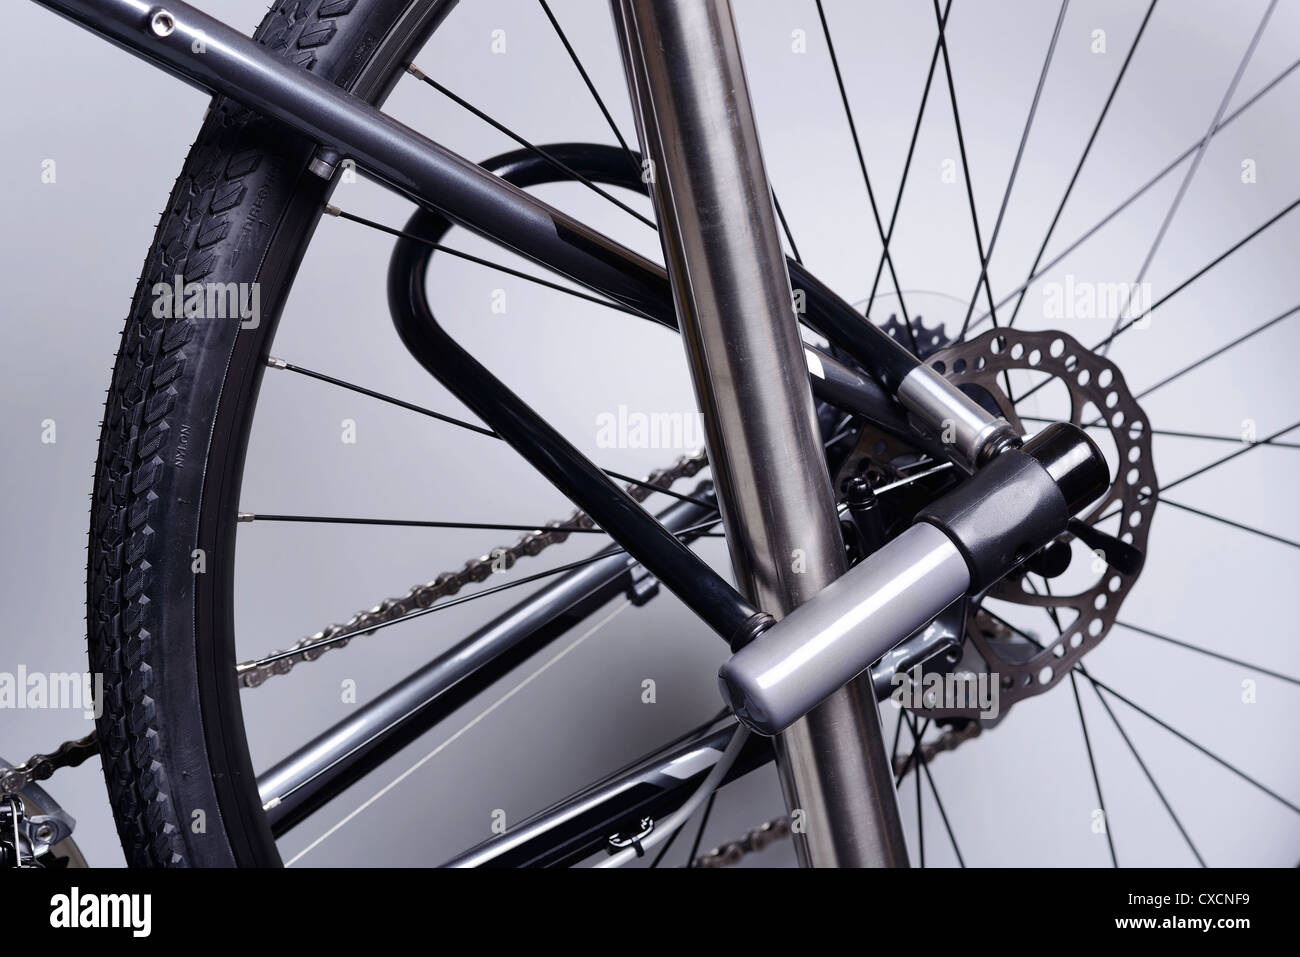 Bicycle attached to a metal pole with a U lock - Stock Image